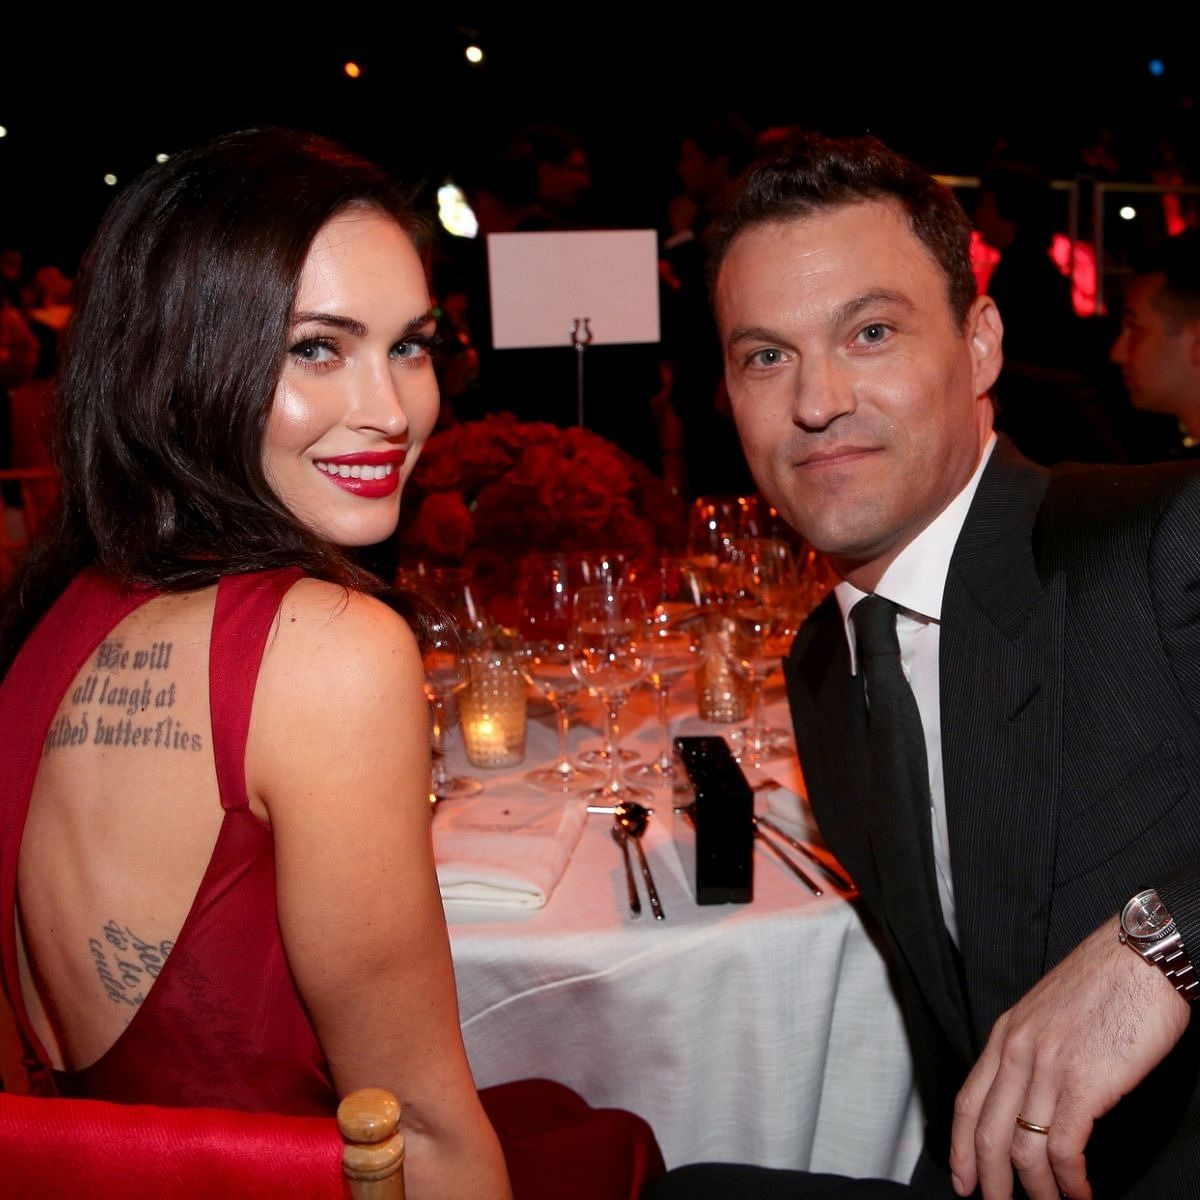 Did you know? Megan Fox first dumped Brian Austin Green while he was bedridden